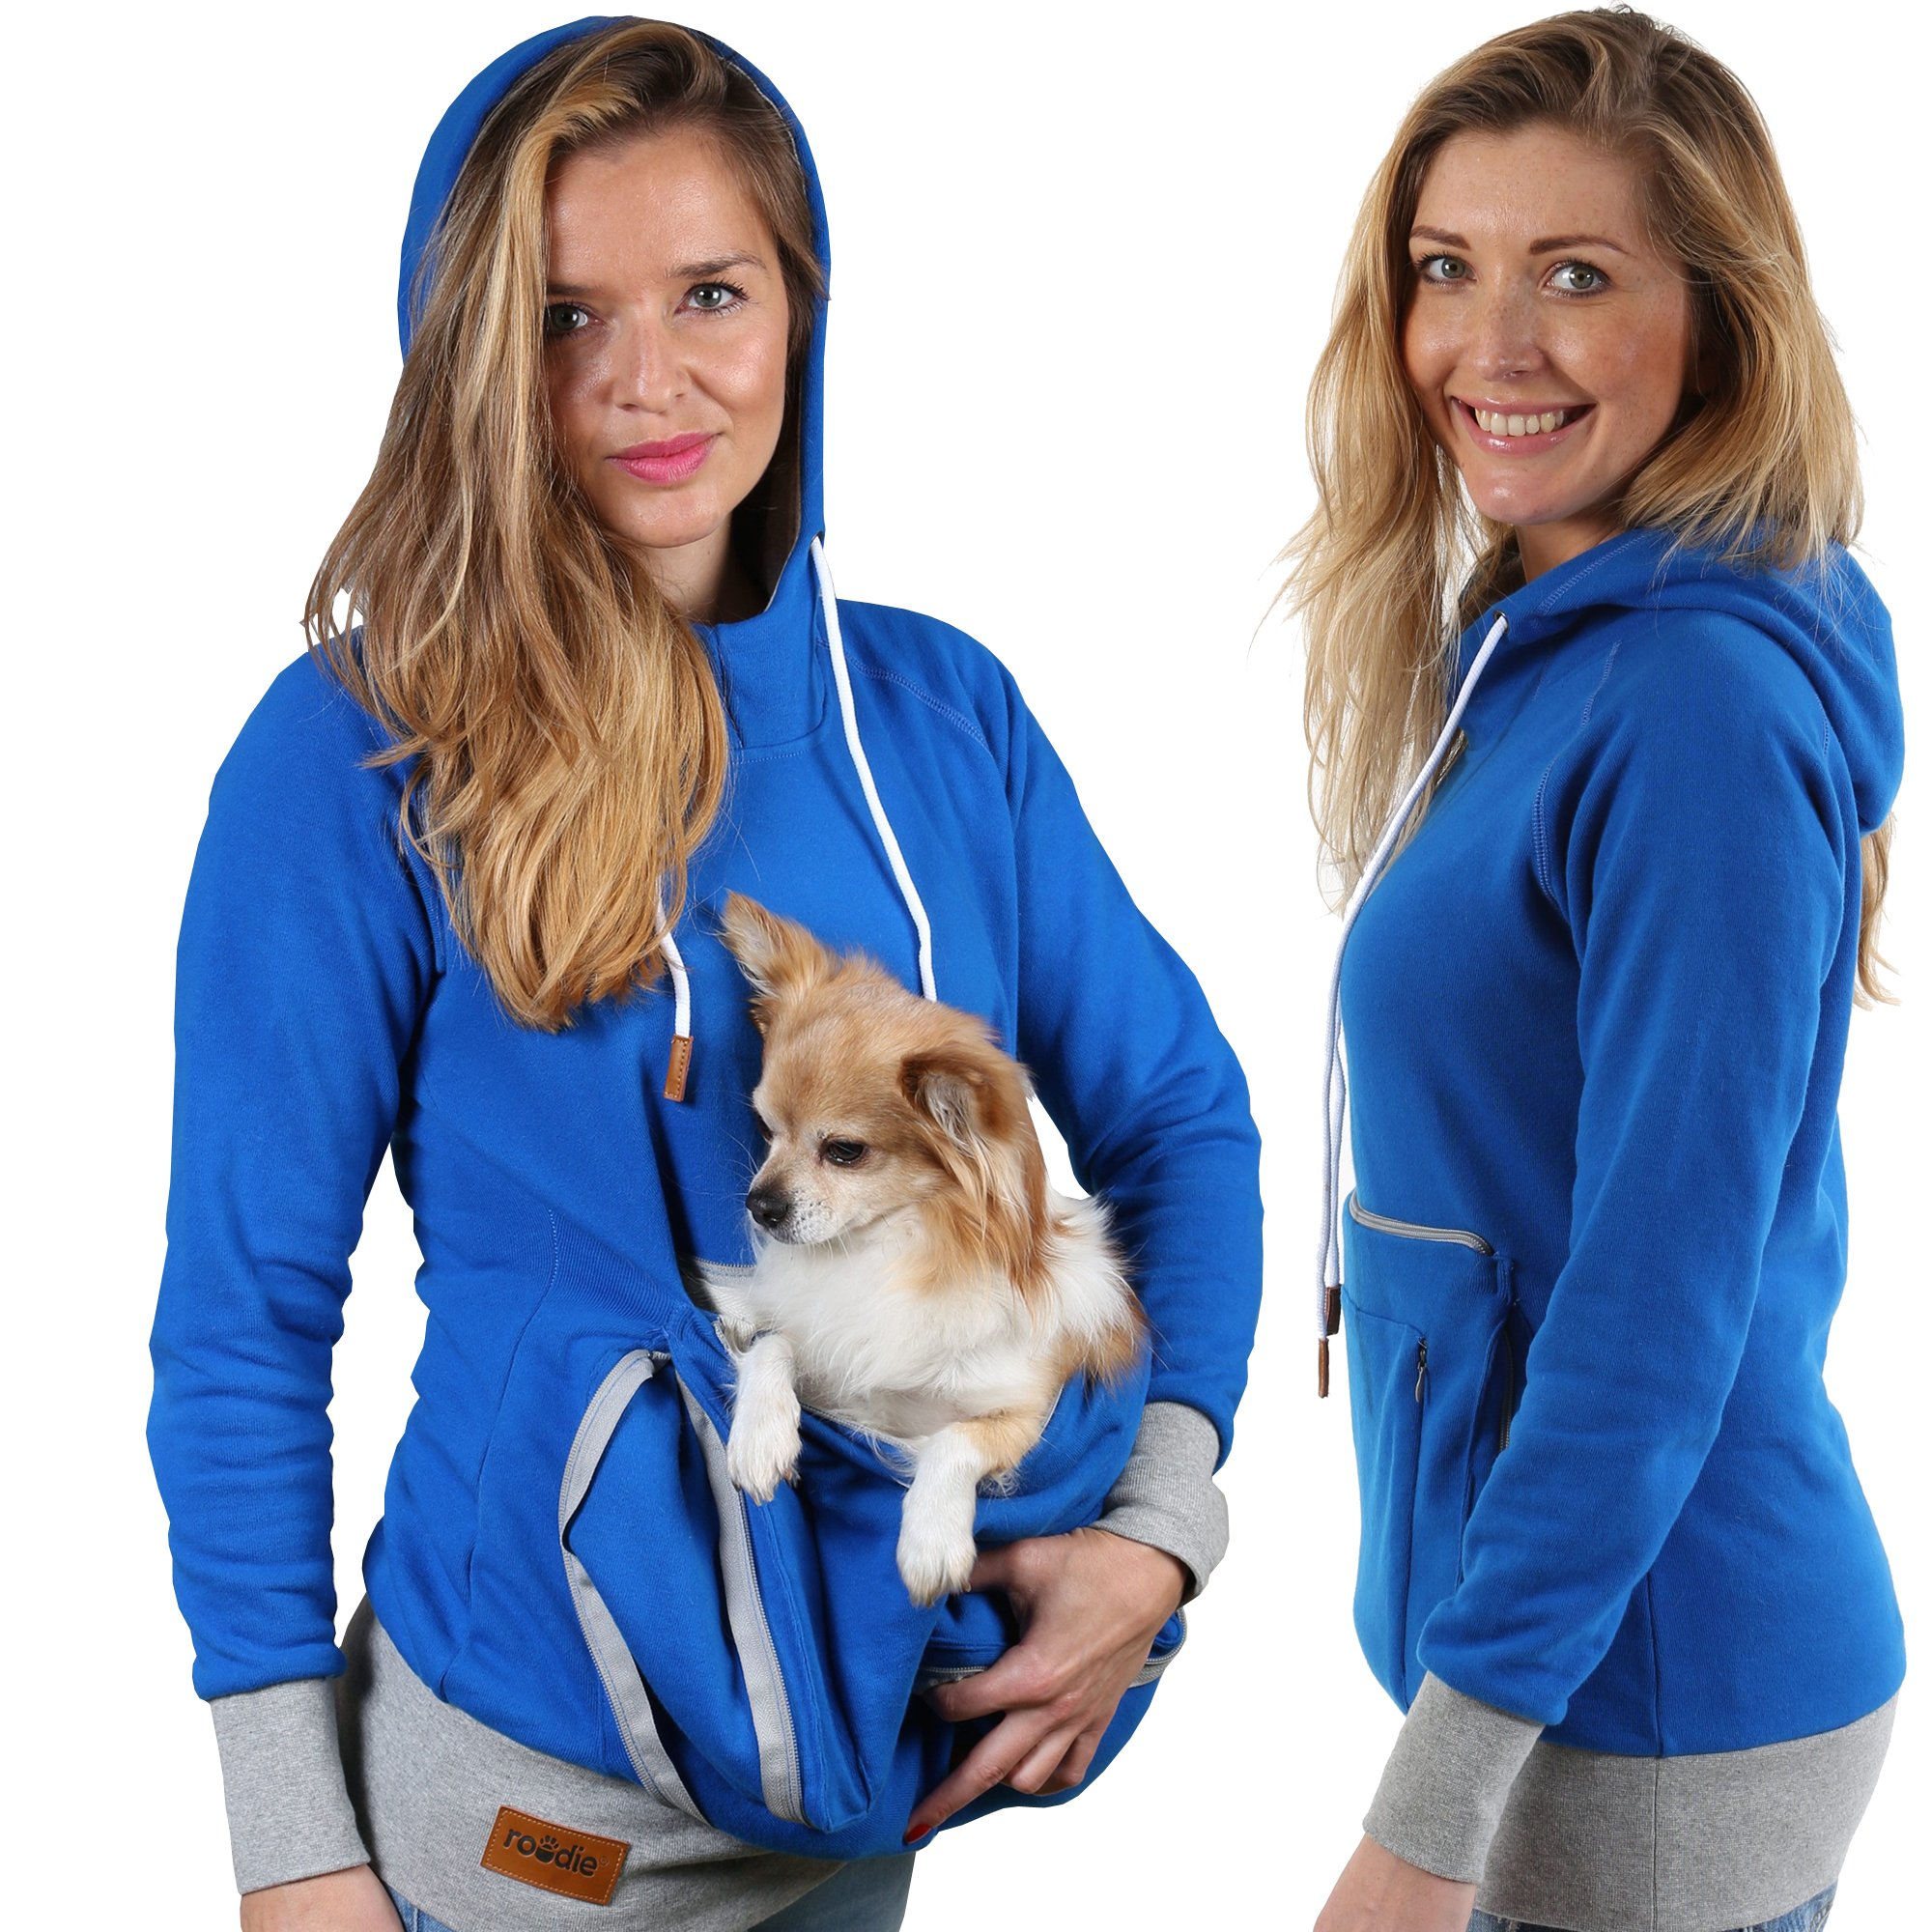 Roodie Pet Pouch Hoodie - Small Cat Dog Carrier Holder Sweatshirt - Womens Fit Kangaroo Pullover Without Ears and Paws - Blue with Gray Trim - Small